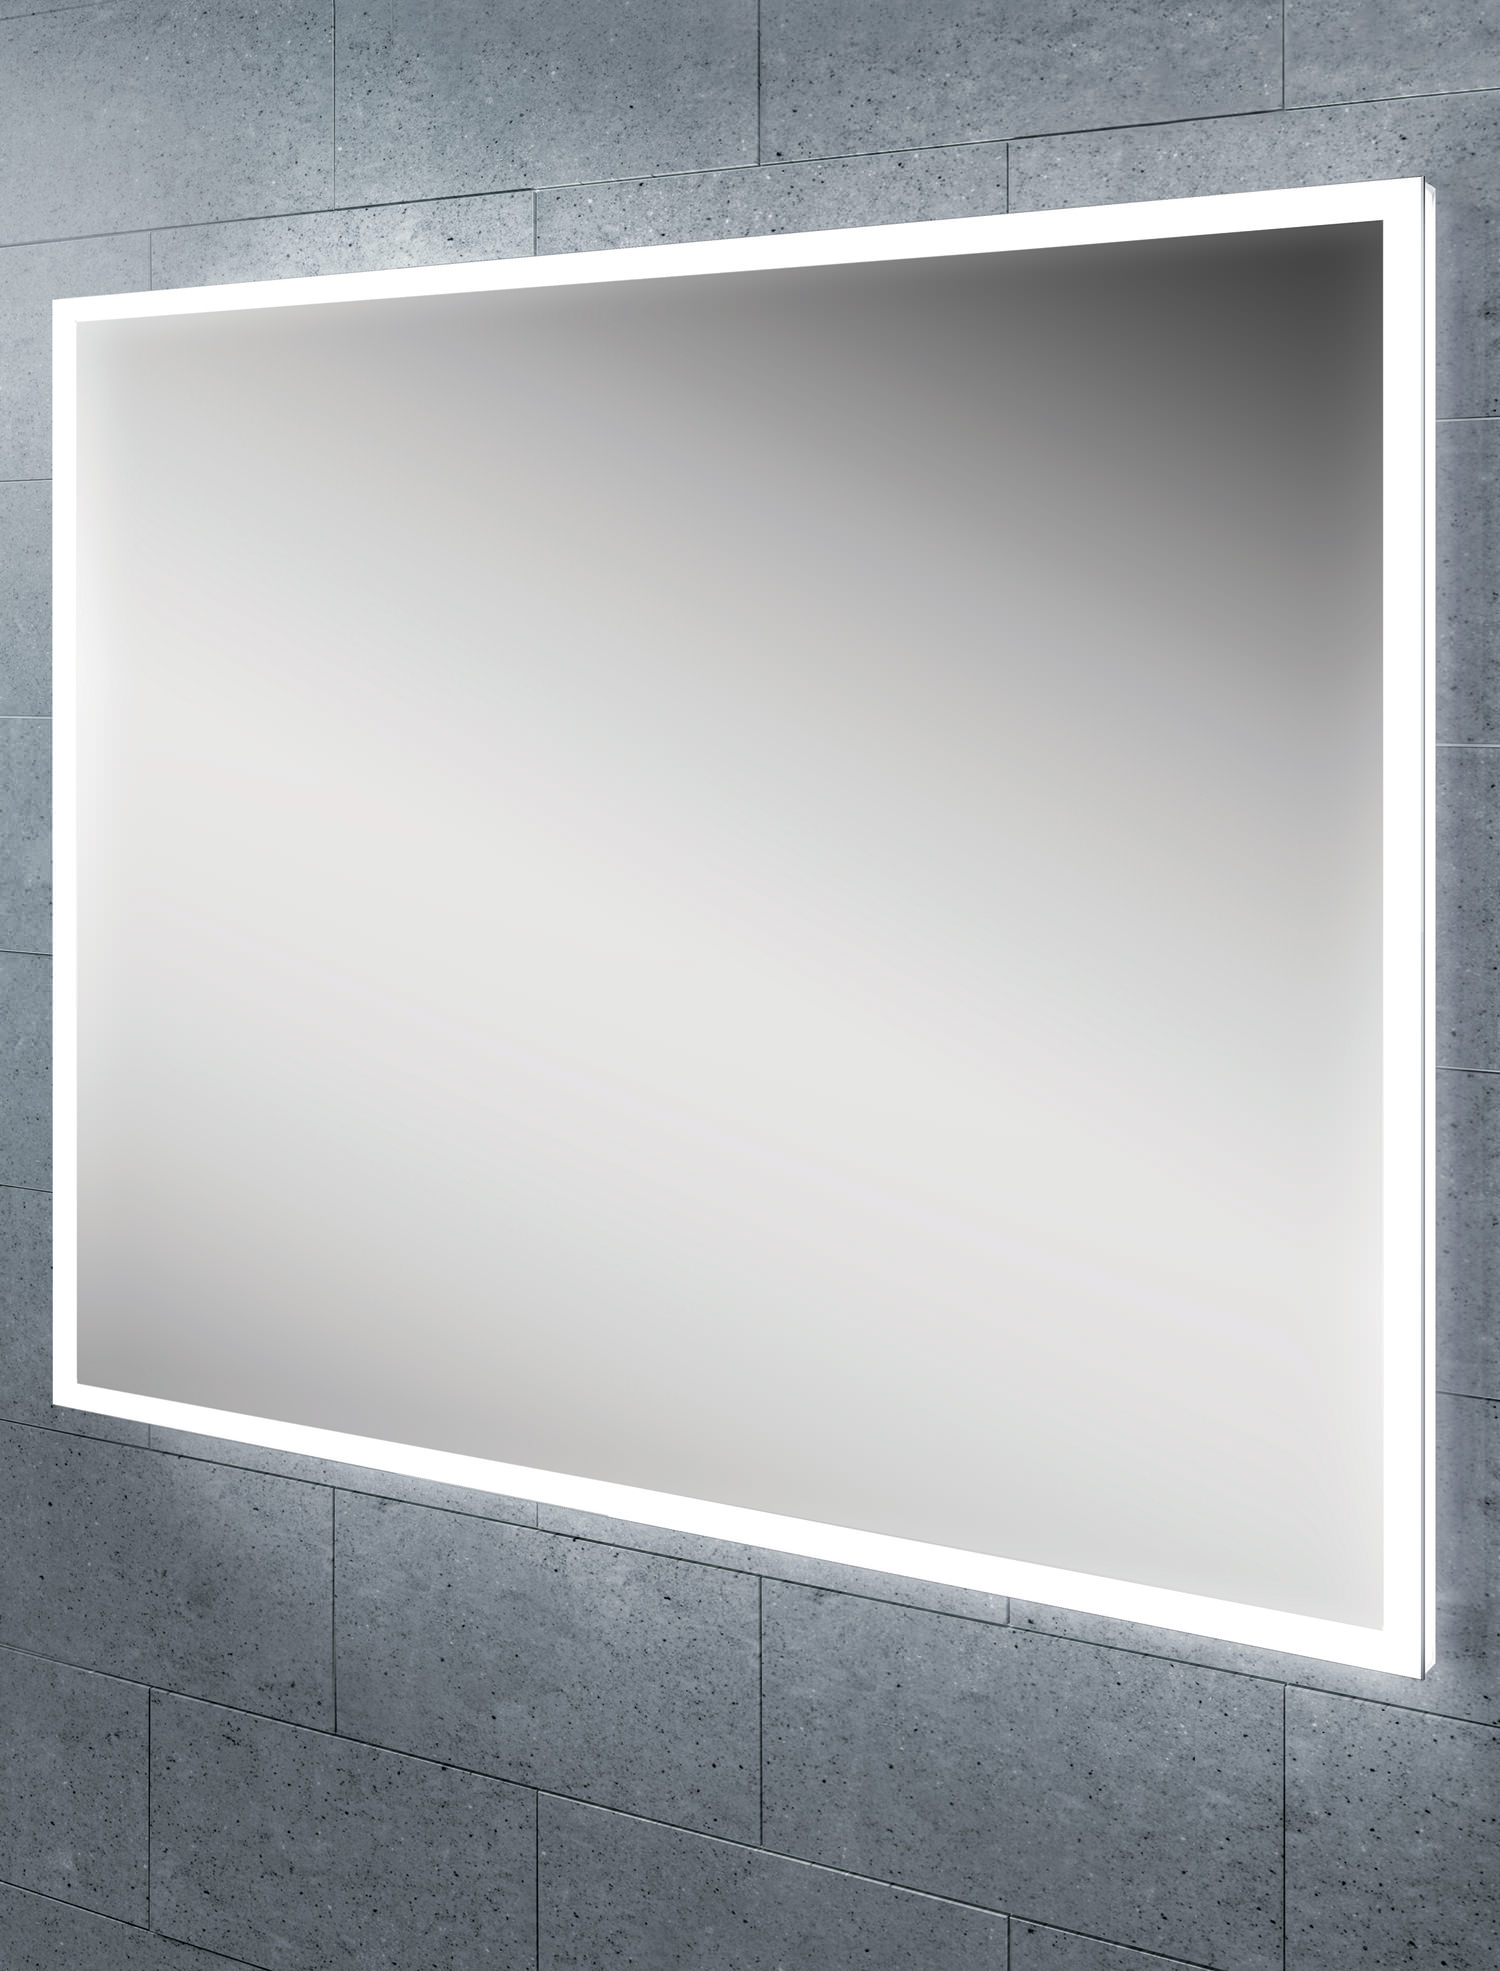 Exceptionnel HIB Globe 60 Steam Free LED Illuminated Bathroom Mirror 800 X 600mm